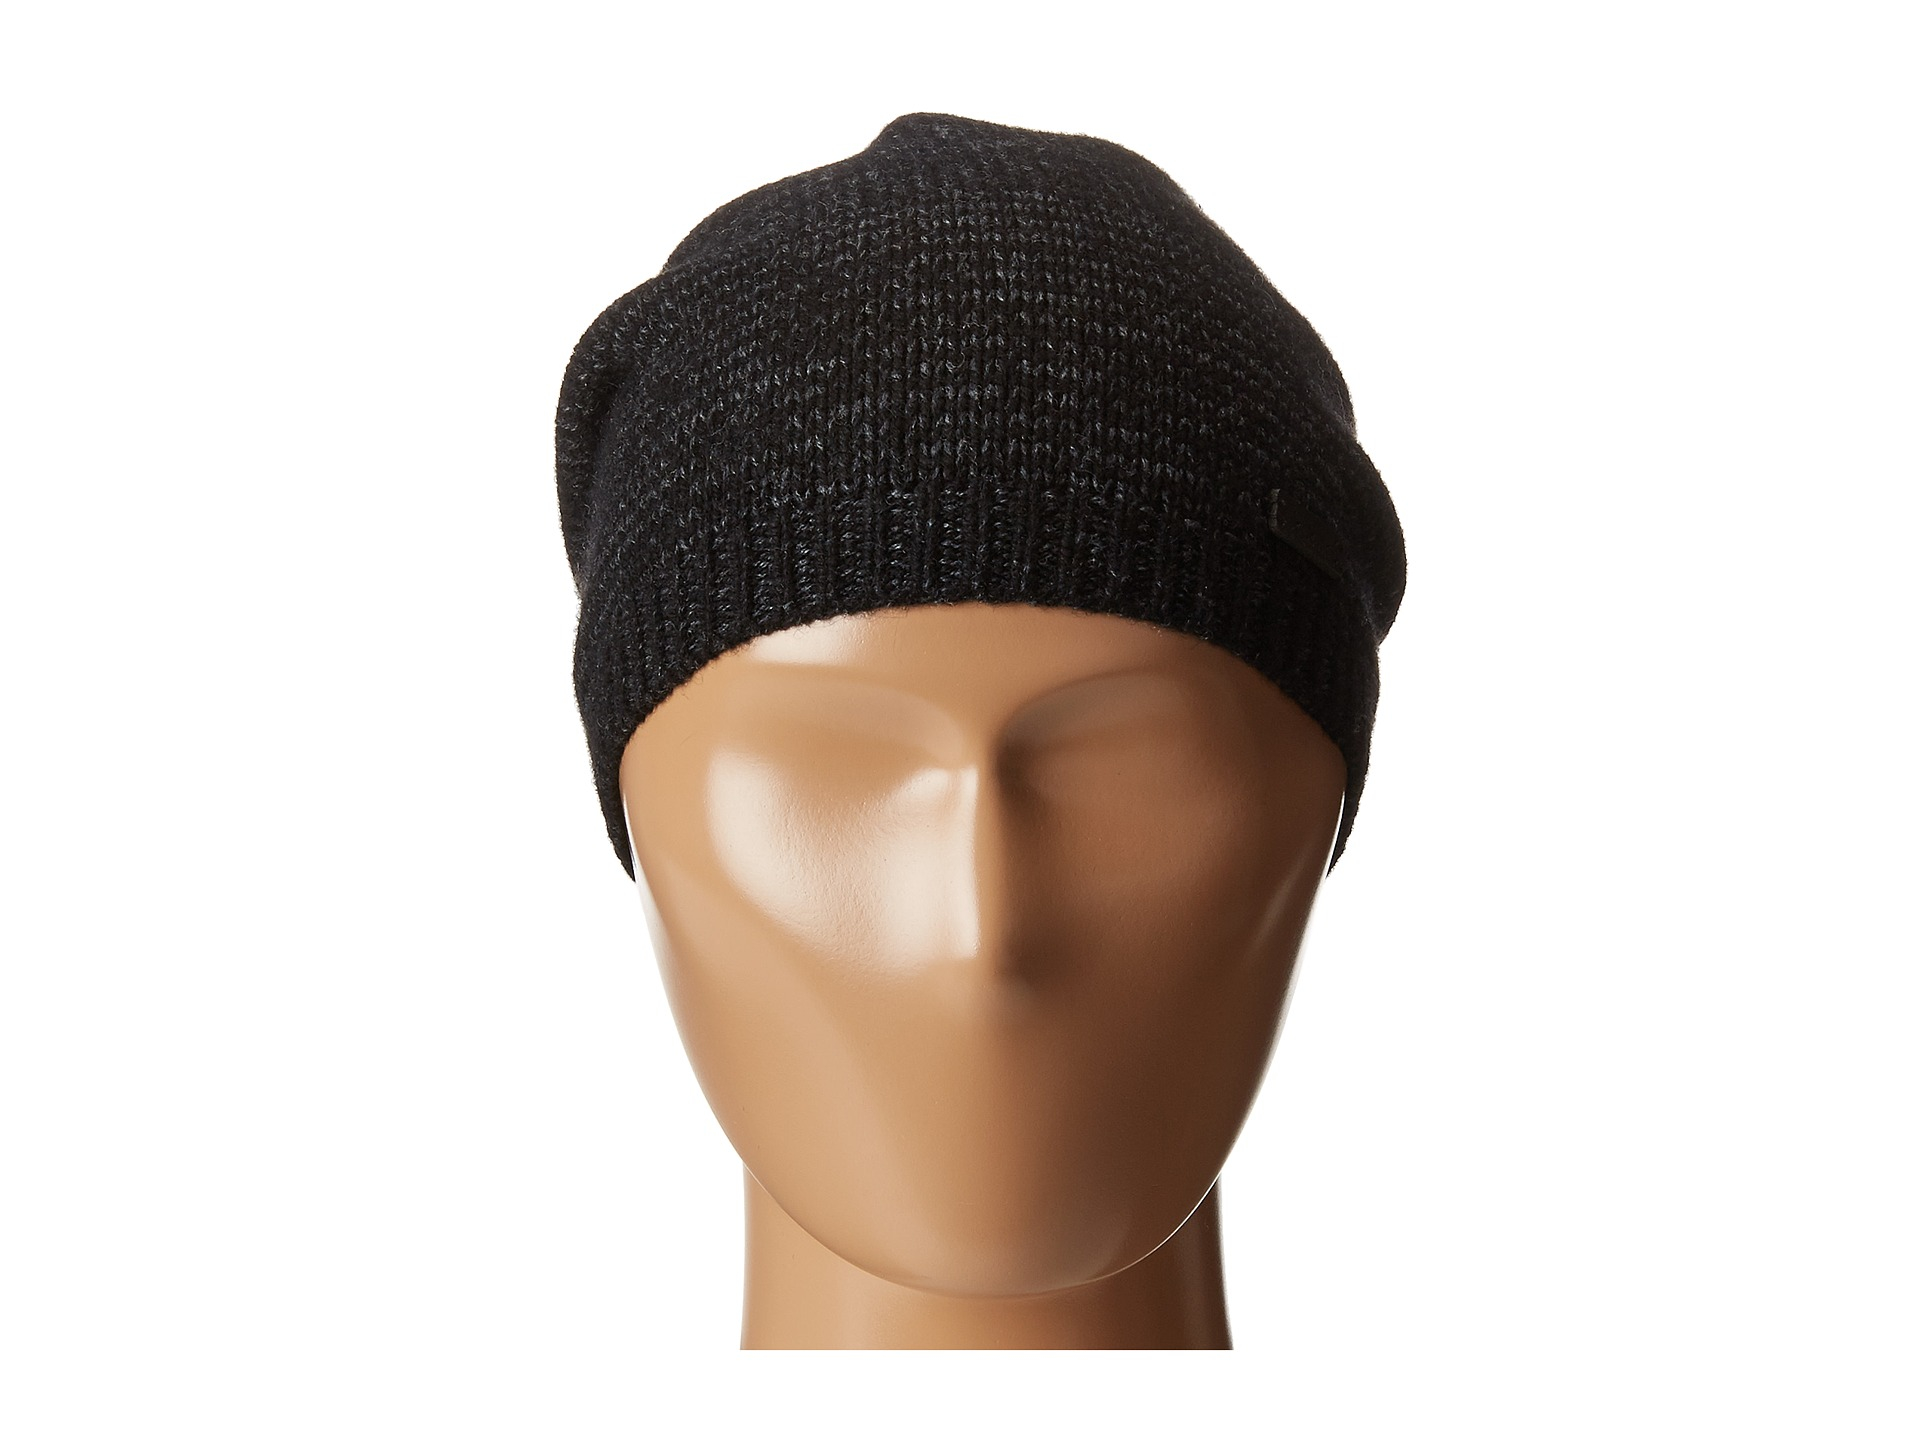 bdfa2f8b886 Lyst - John Varvatos Ombre Random Feed Knit Hat in Black for Men